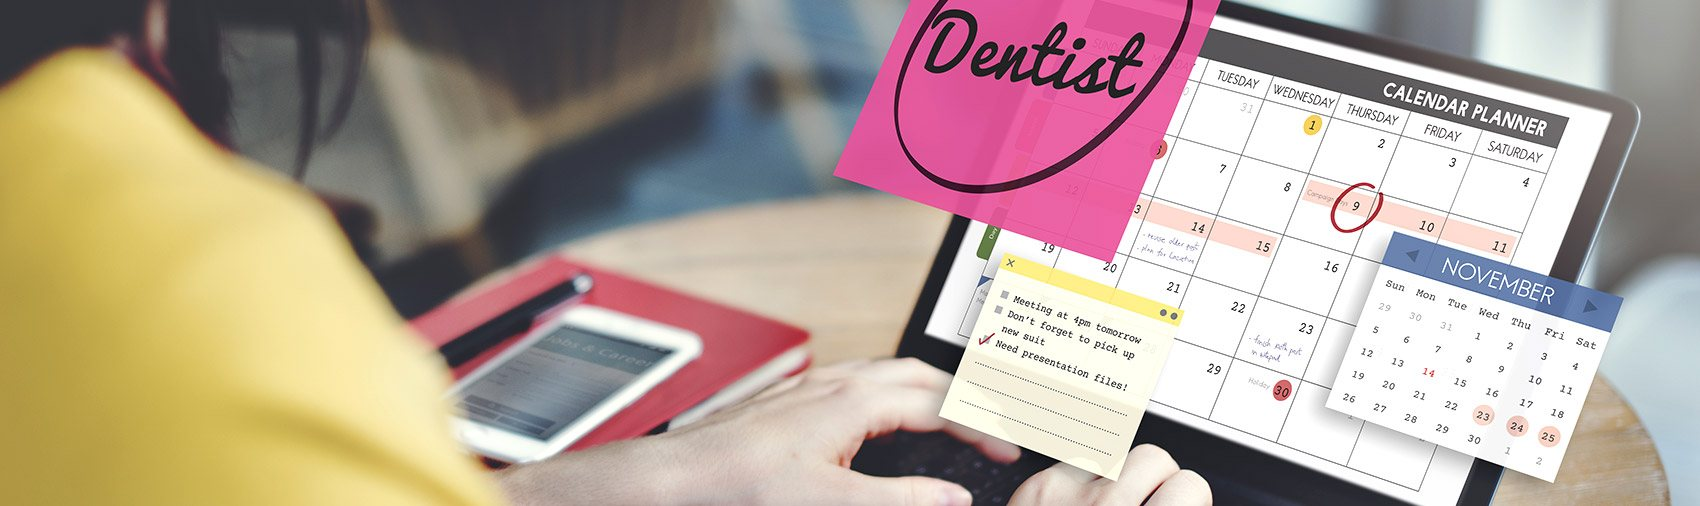 Appointment Request - Meredith Levine, DDS, Inc.